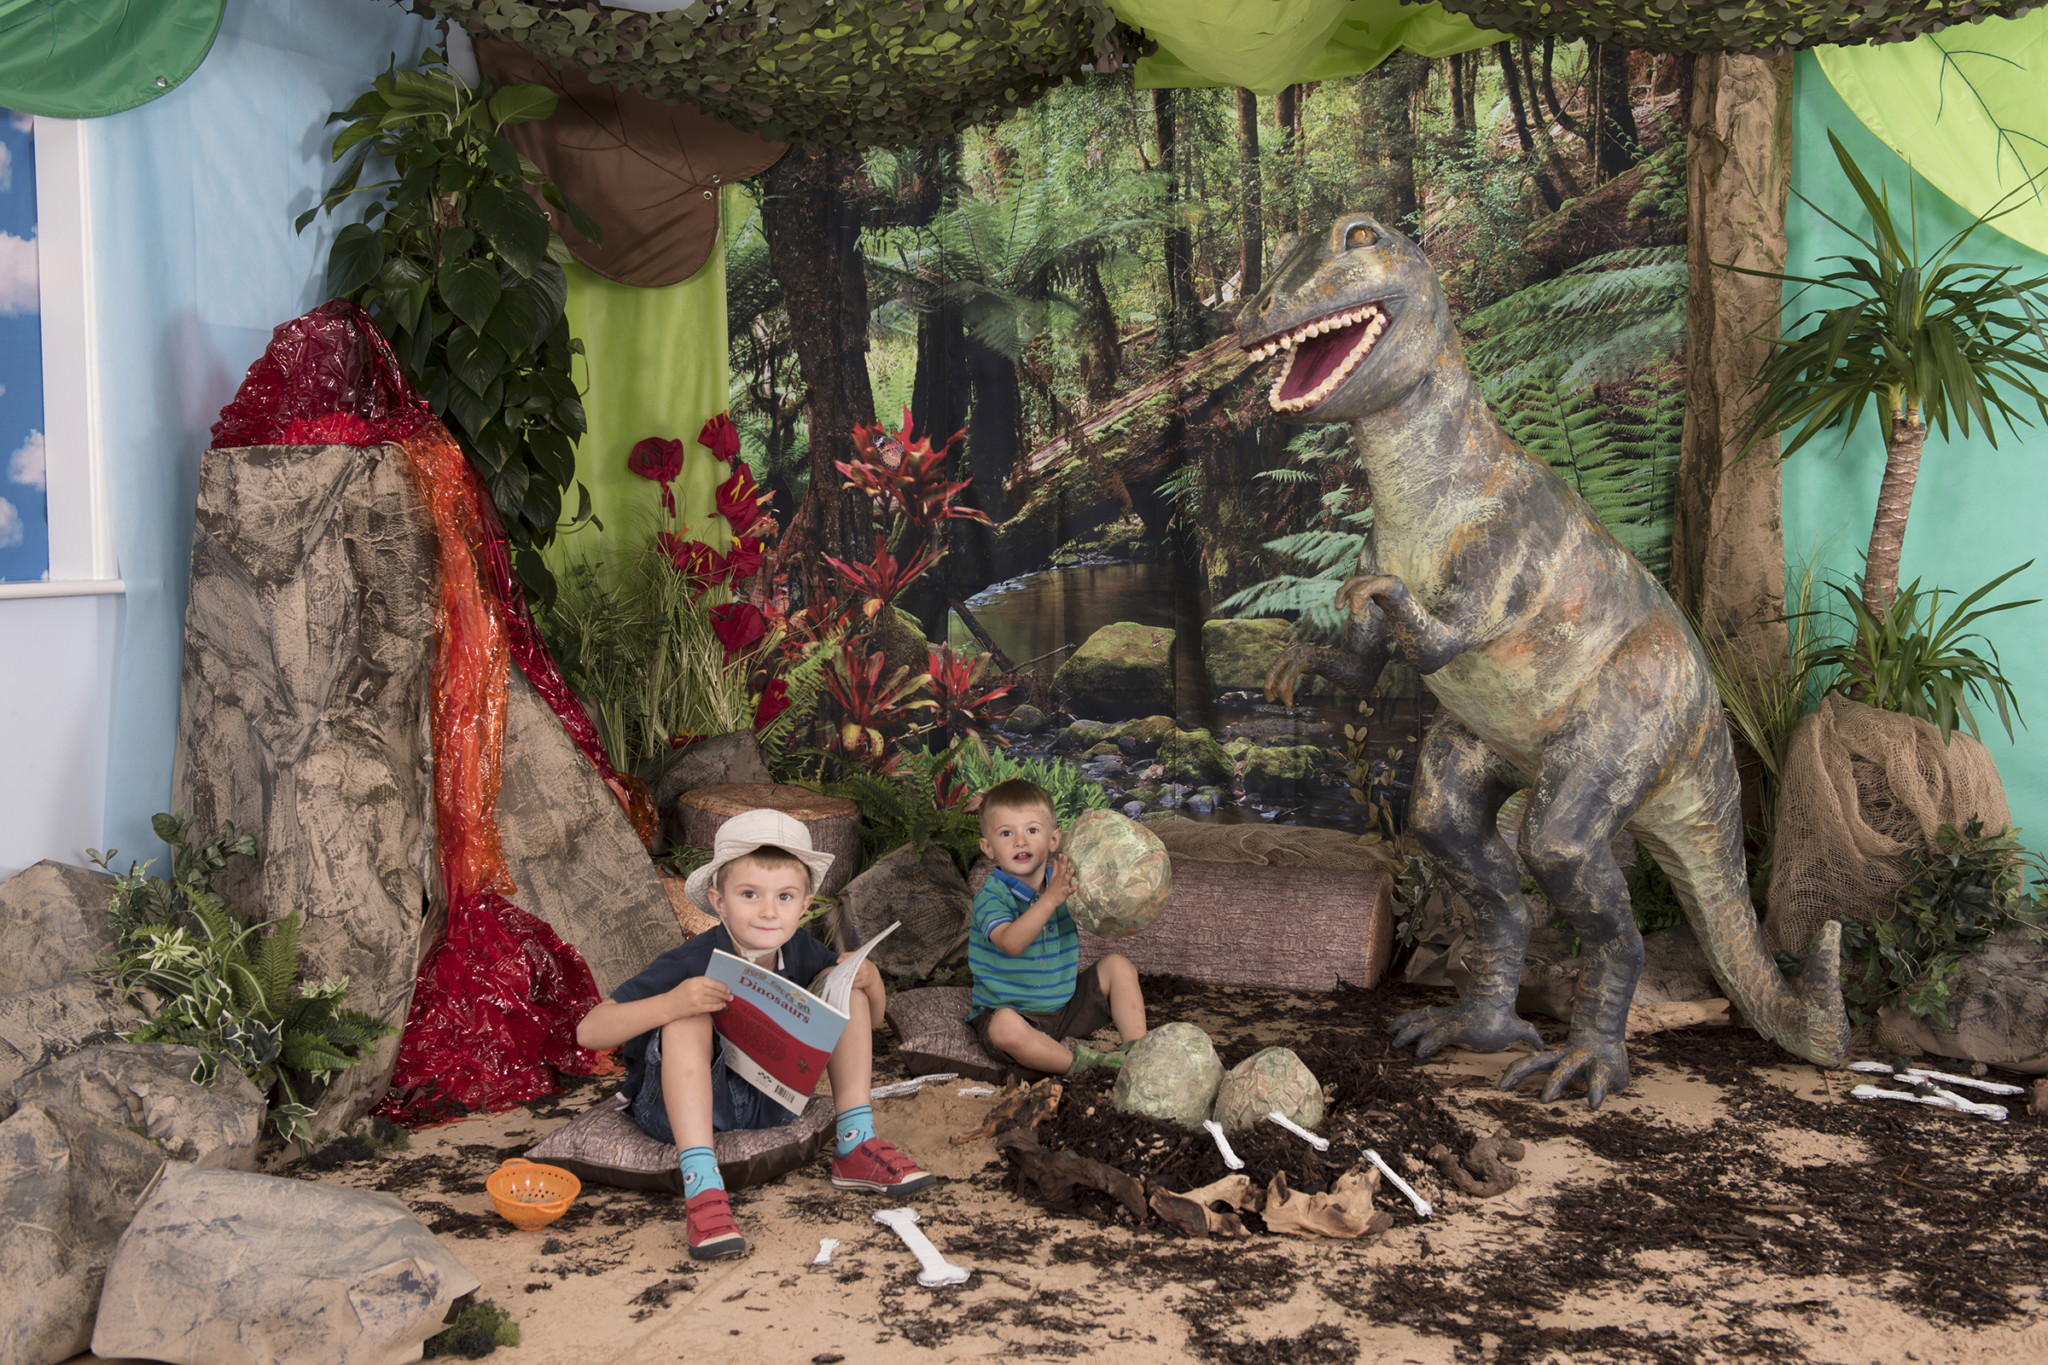 Dinosaur immersive environment